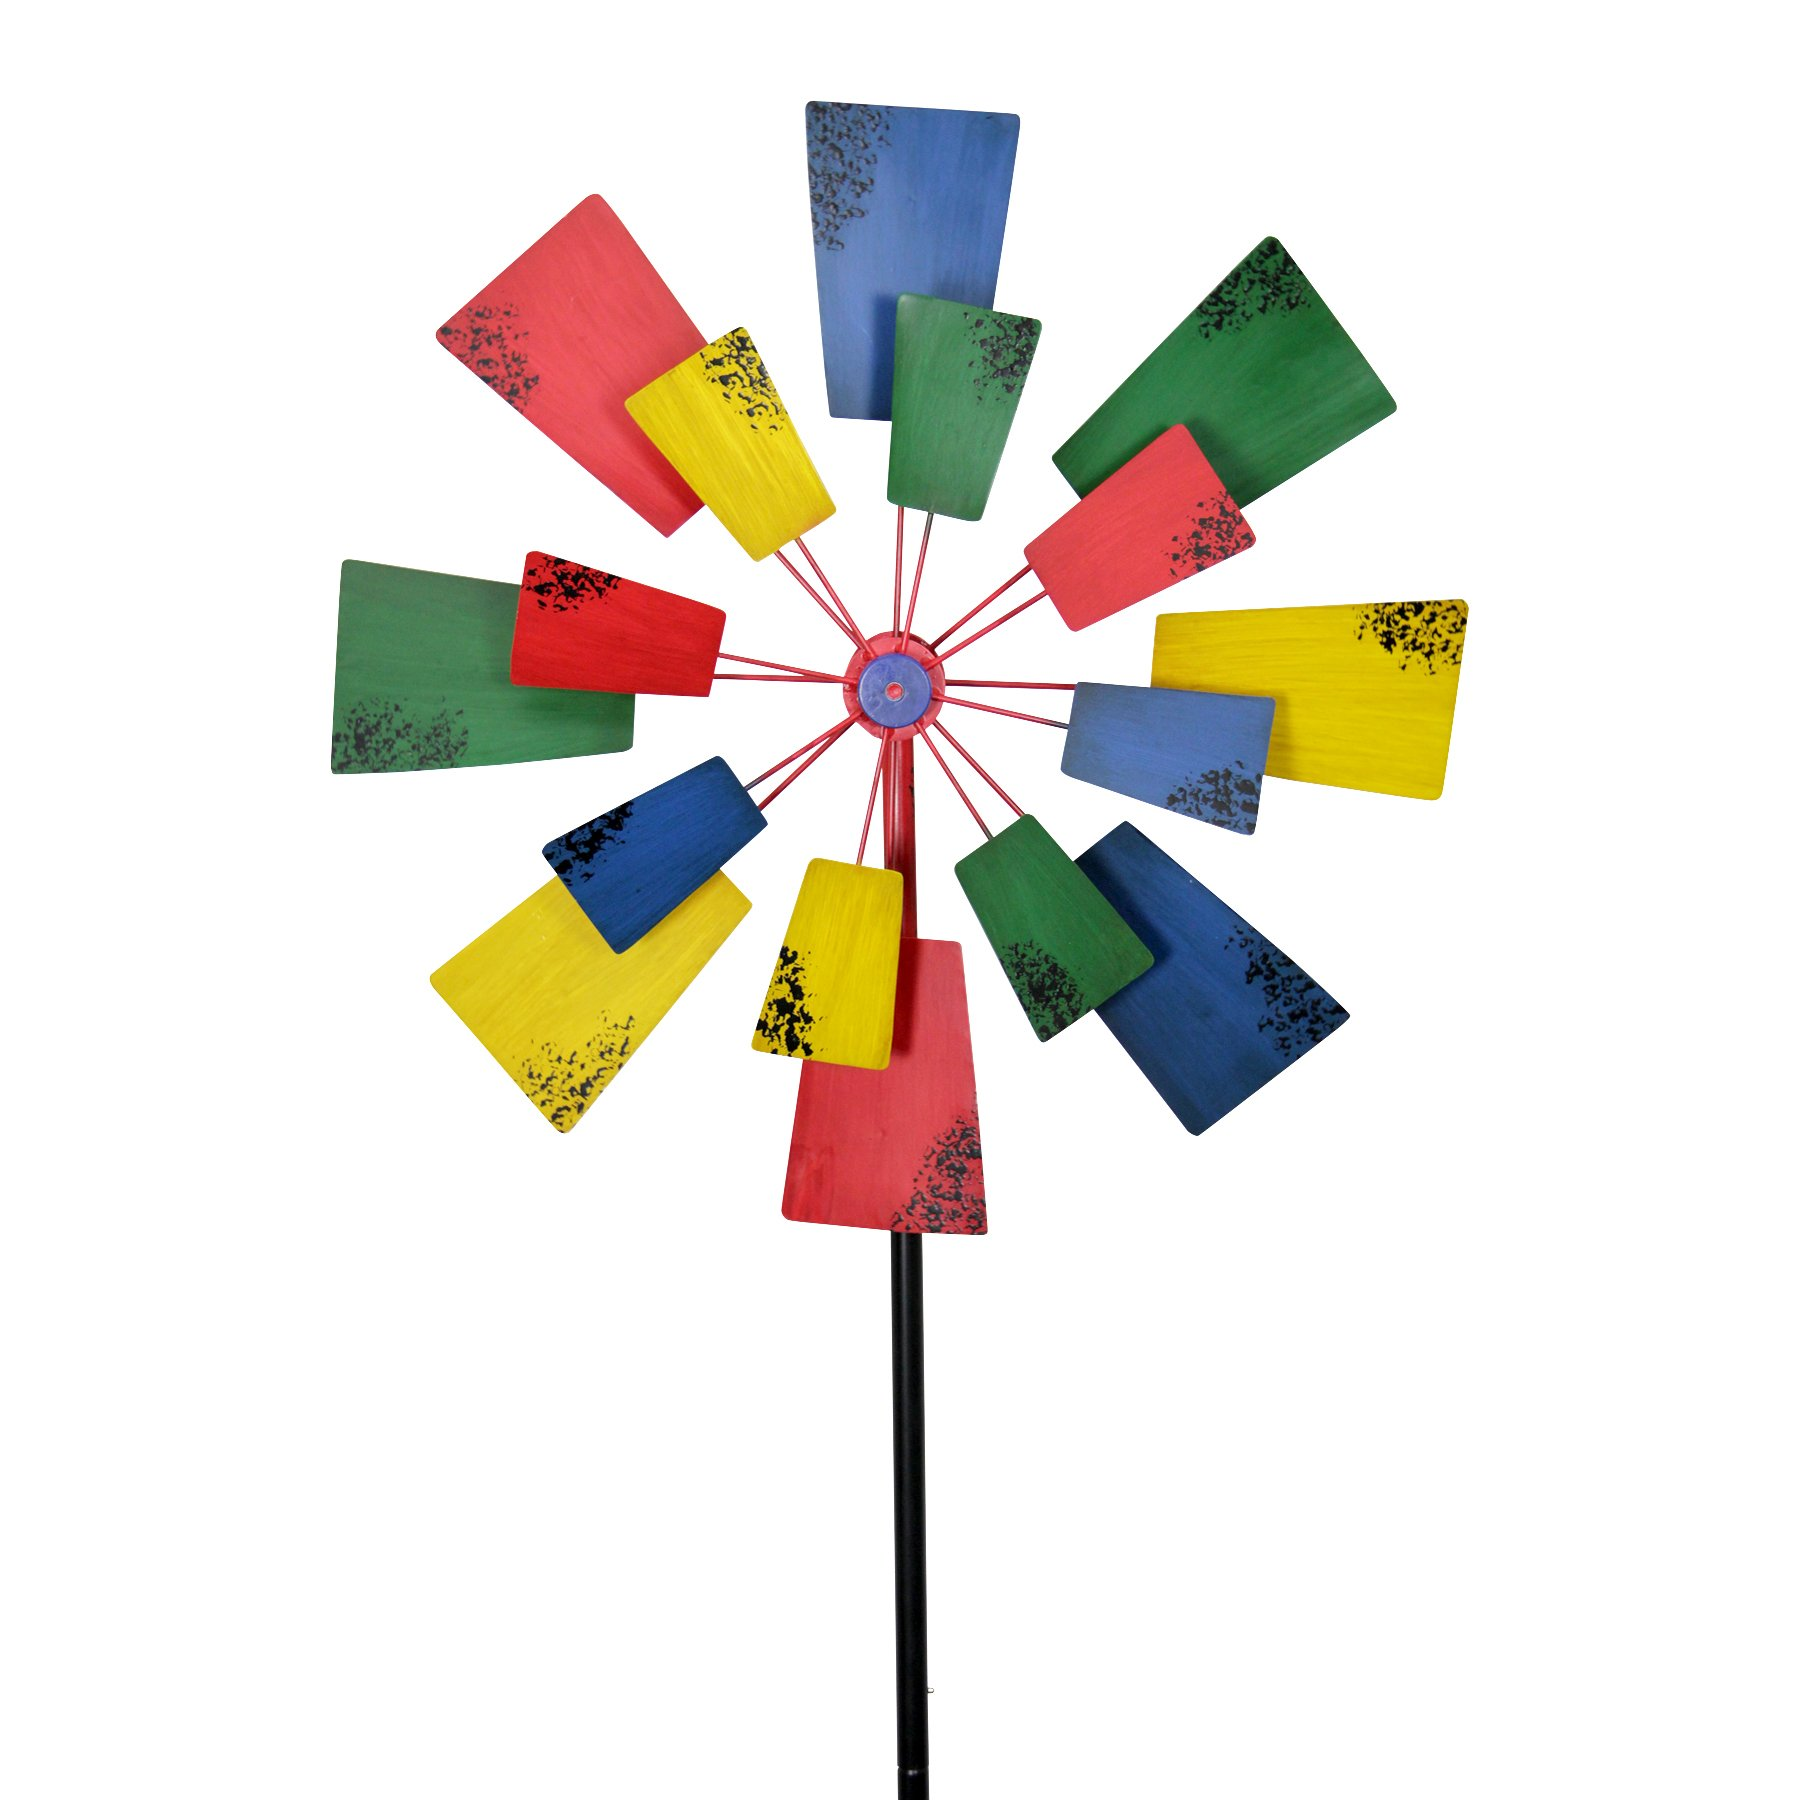 Exhart Vintage Windmill Double Spinner Garden Stake - Pinwheel Outdoor Decor w/Multicolor Metal Spinners - Garden Windmill with Metal Blades in Red, Blue, Yellow and Green Color, 24'' L x 23'' W x 85`''H